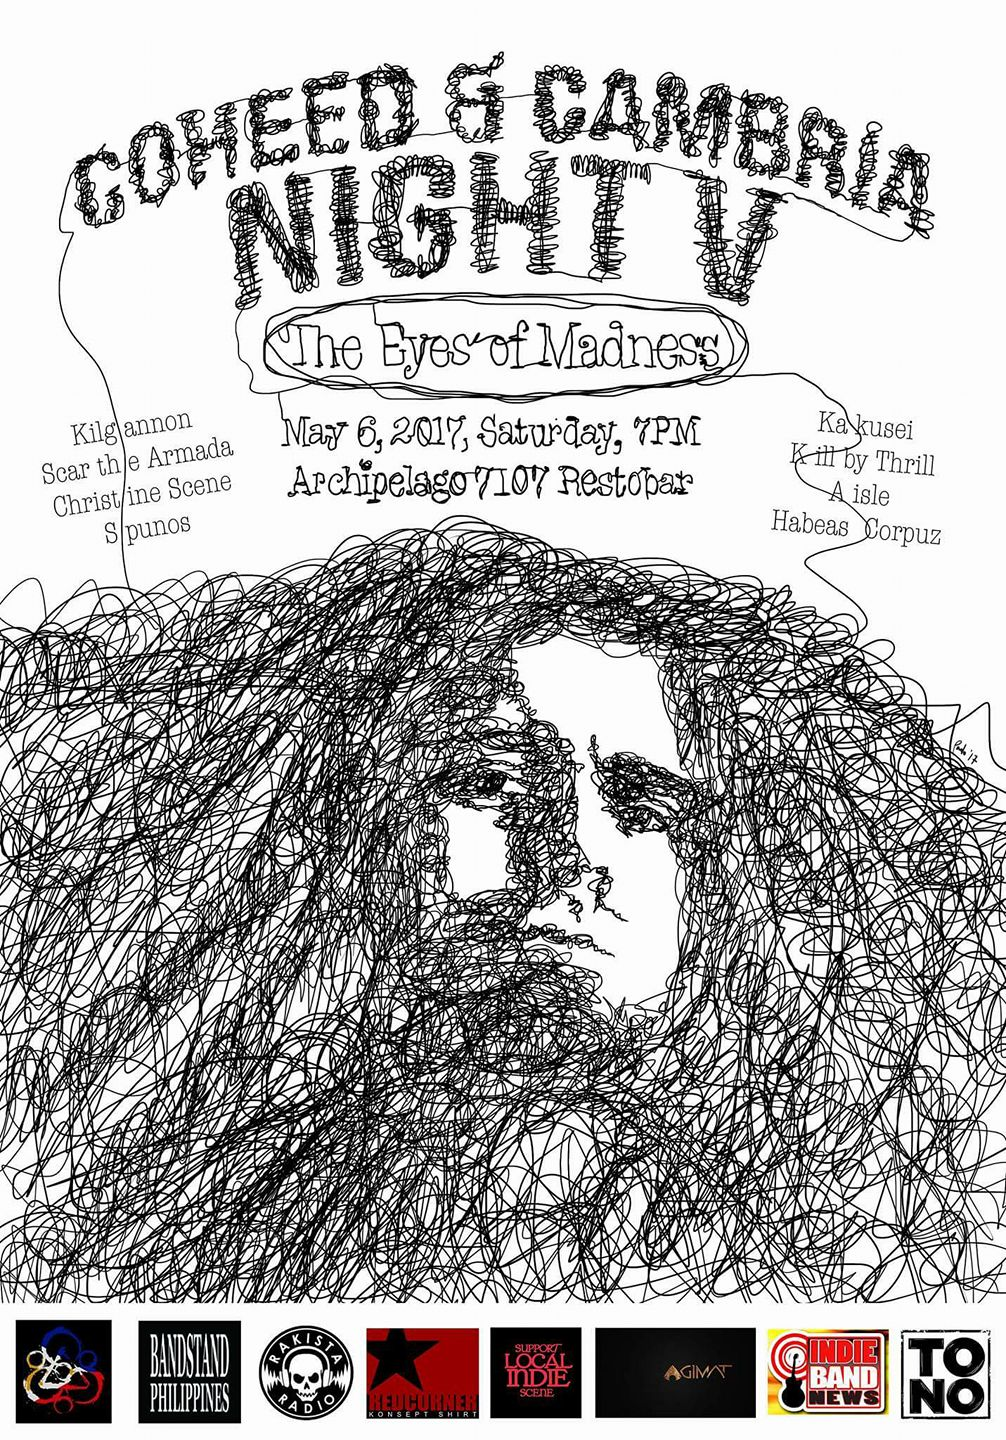 Coheed and Cambria Night V: The Eyes of Madness Saturday, May 6 at 7 PM - 1 AM May 6 at 7 PM to May 7 at 1 AM pin Show Map Archipelago 7107 El Pueblo Restaurant and lounge G/F El pueblo Real De Manila, Julia Vargas Street Corner Ruby Road, Ortigas,, 1605 Pasig About Discussion 37 Going · 51 InterestedSee All Zalyn is going Share Details Get ready for the yearly gathering of Coheed and Cambria fans in the Philippines as Coheed and Cambria - Philippines and TONO Events bring you: COHEED AND CAMBRIA NIGHT V: The Eyes of Madness May 6, 2017 (Saturday), 7pm at Archipelago 7107 El Pueblo Restaurant and lounge, Ruby Rd. Ortigas, Pasig City. Sing along and enjoy performances from: Kakusei Kill by Thrill Aisle Habeas Corpuz Kilgannon spunos Scar the Armada Christine Scene Gates open at 7pm. Tickets at P184 each with 1 free beer. Each ticket also qualifies as a raffle entry. Get to win awesome items including a shirt from Redcorner! This is going to be another unforgettable night! See you at the fence! *** We would like to thank our media partners: Rakista Radio Agimat: Sining at Kulturang Pinoy Bandstand Philippines Support Your Local Indie Scene Indie Band News Our poster artist: Paolo de Leon